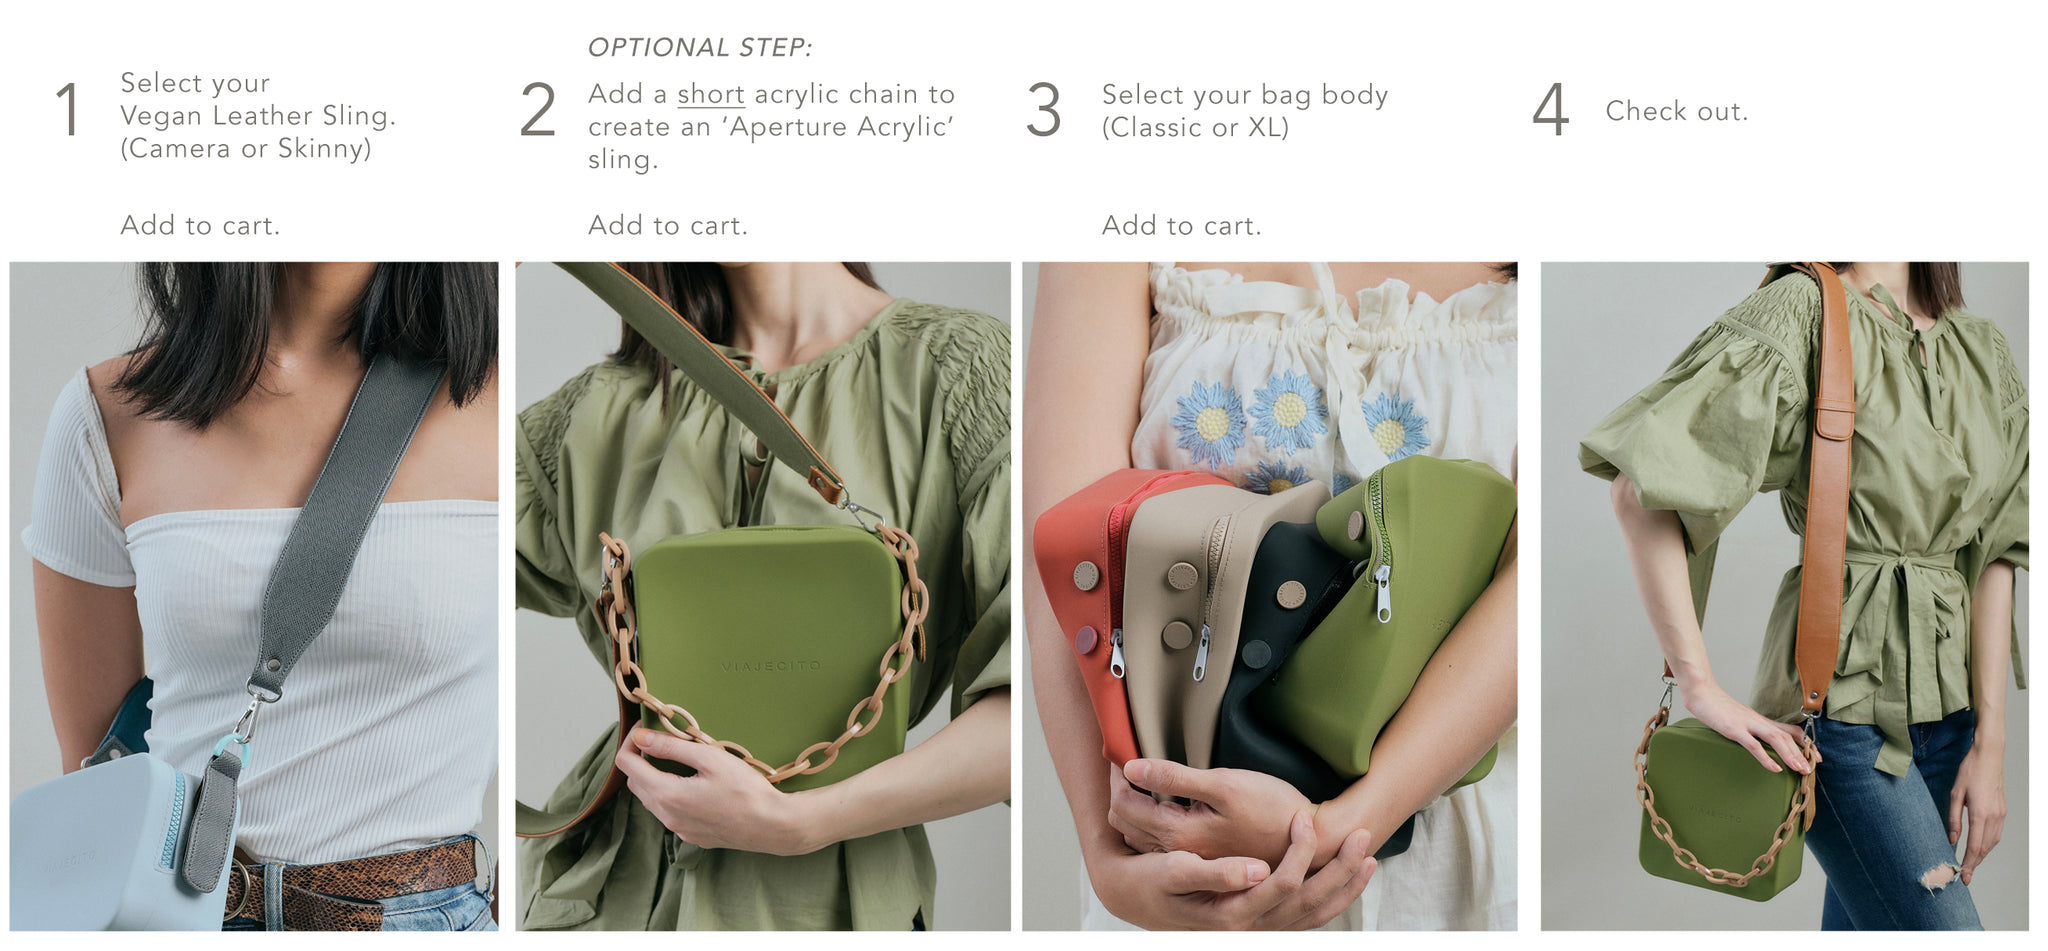 1.) Select Strap, 2.) Add a chain, 3.) Select Bag Body 4.) Check Out